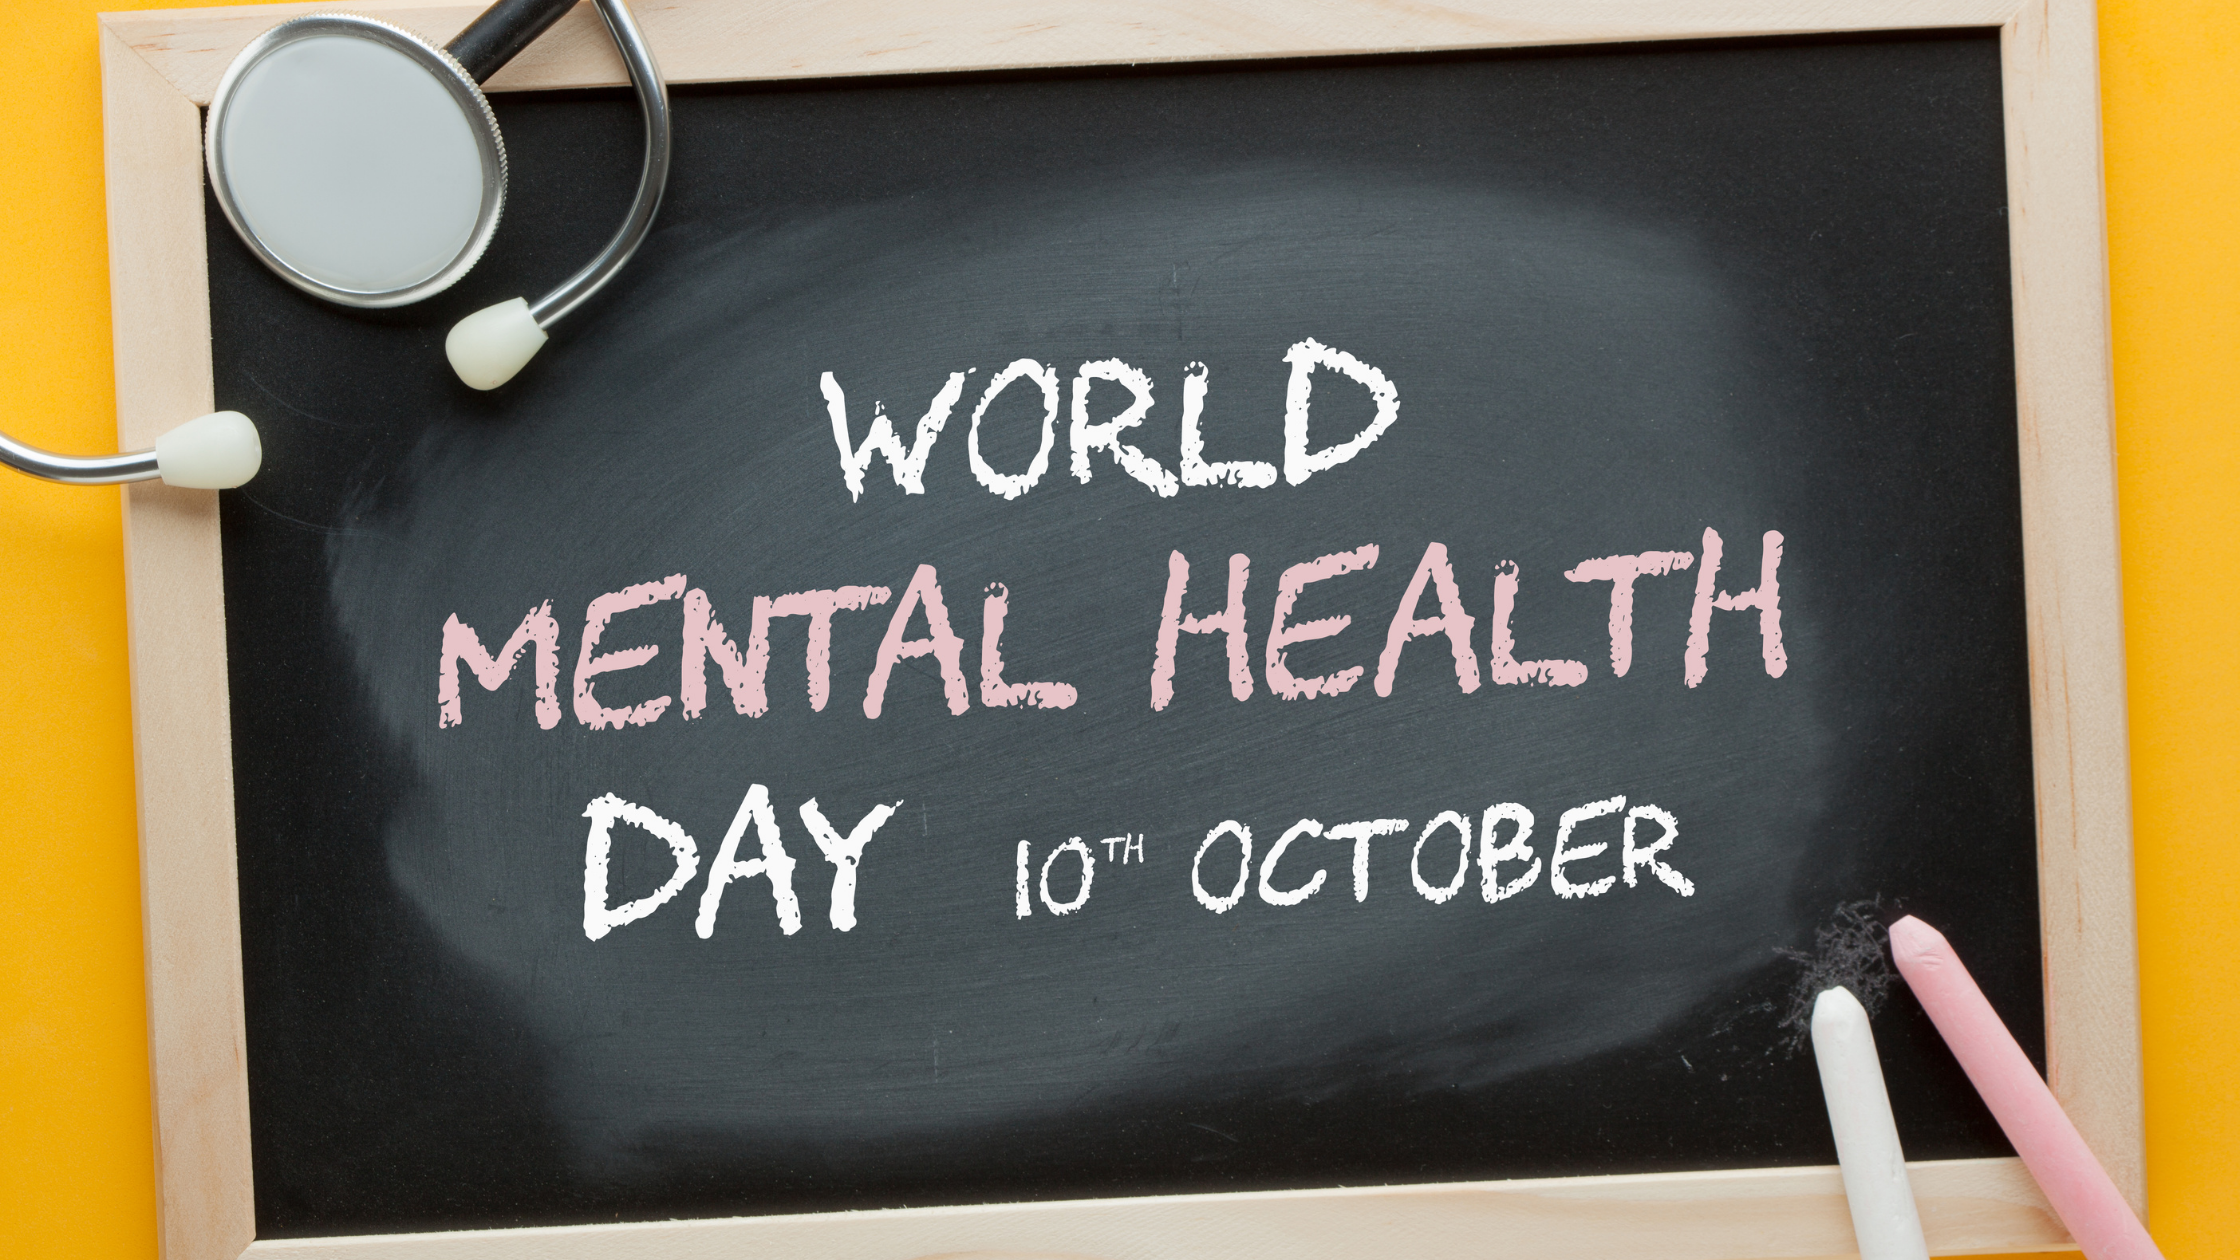 Mental Health and Wellbeing at Work